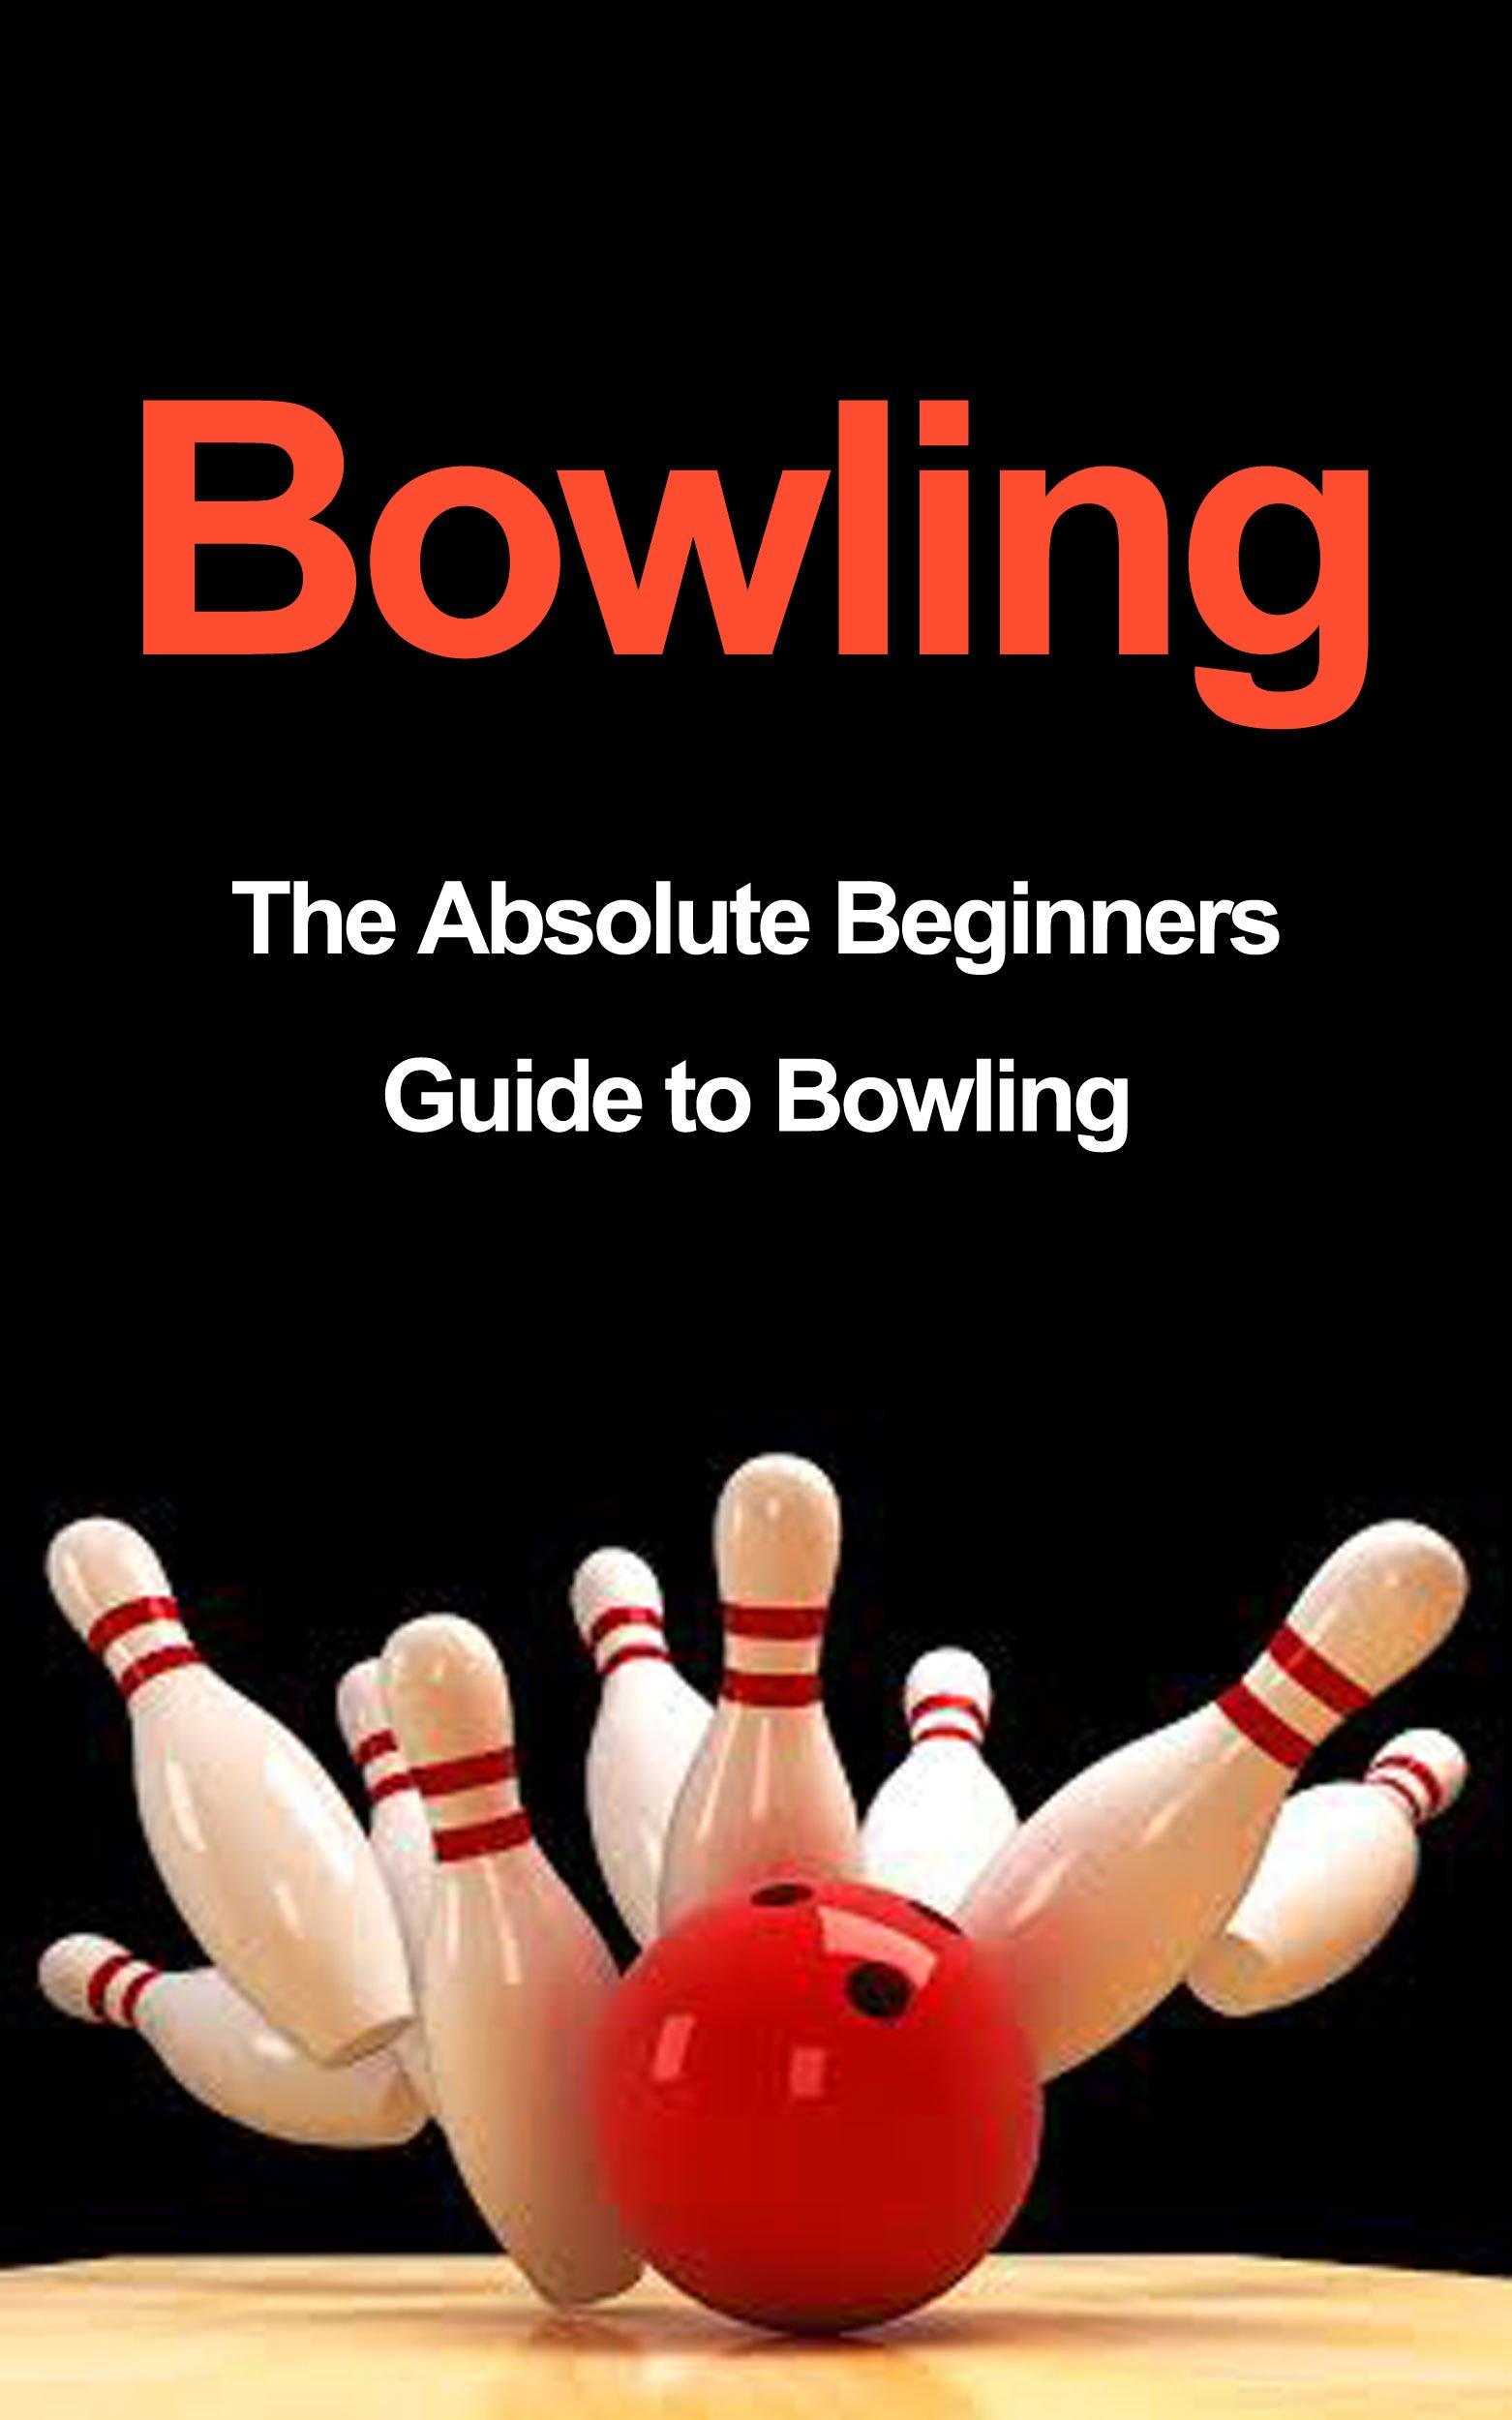 Bowling  The Absolute Beginners Guide To Bowling  Bowling Tips To Build Fundamentals And Execution Like A Pro In 7 Days Or Less  Bowling Basics Bowling ... Tips Bowling Execution   English Edition